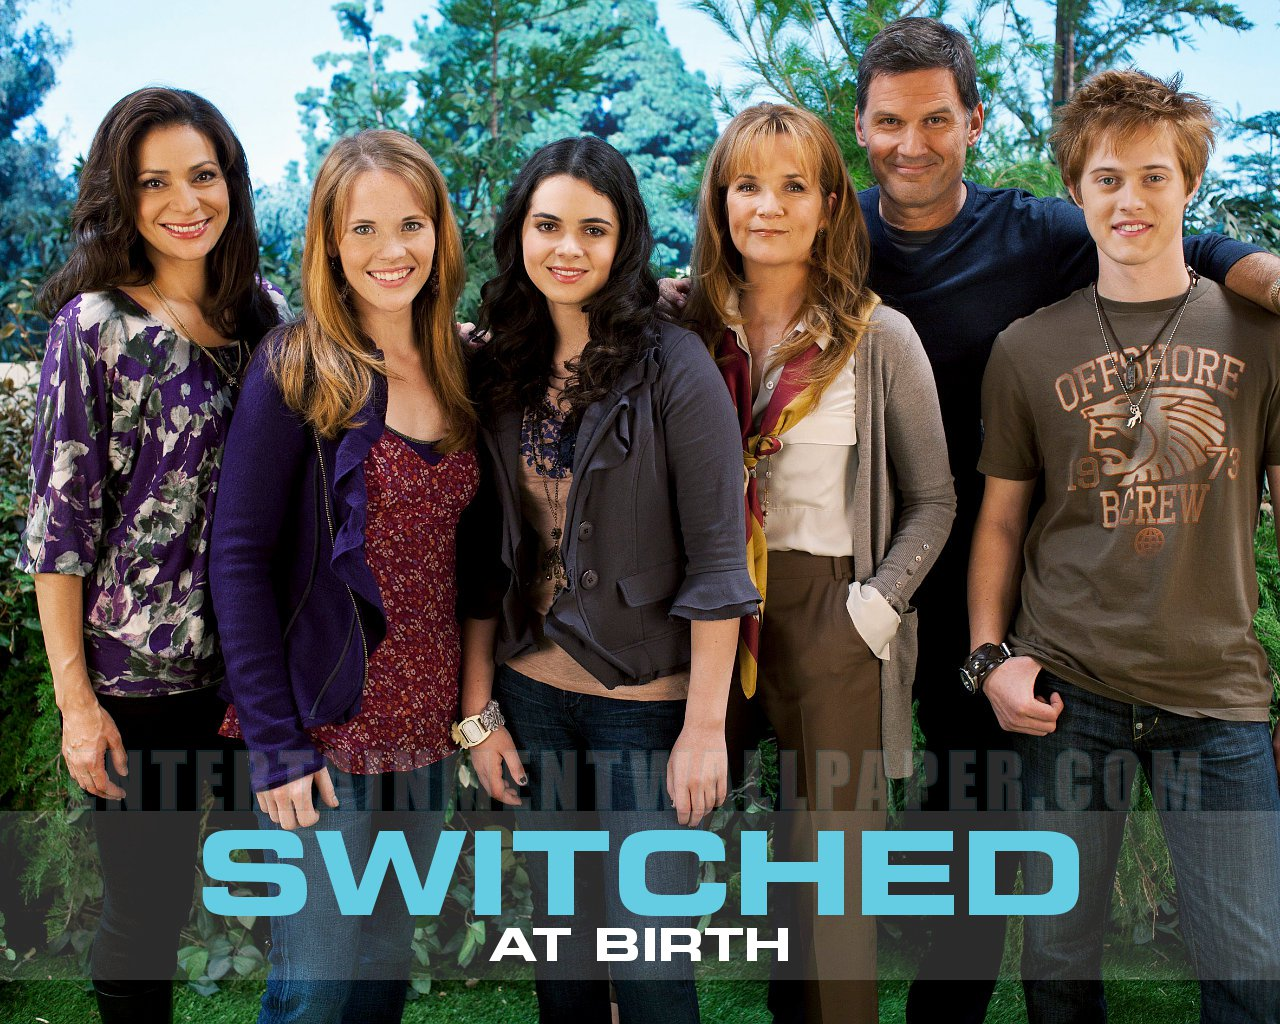 Switched at Birth Wallpaper switched at birth 32201560 1280 1024 Download Switched at Birth S03E15 Legendado AVI + RMVB